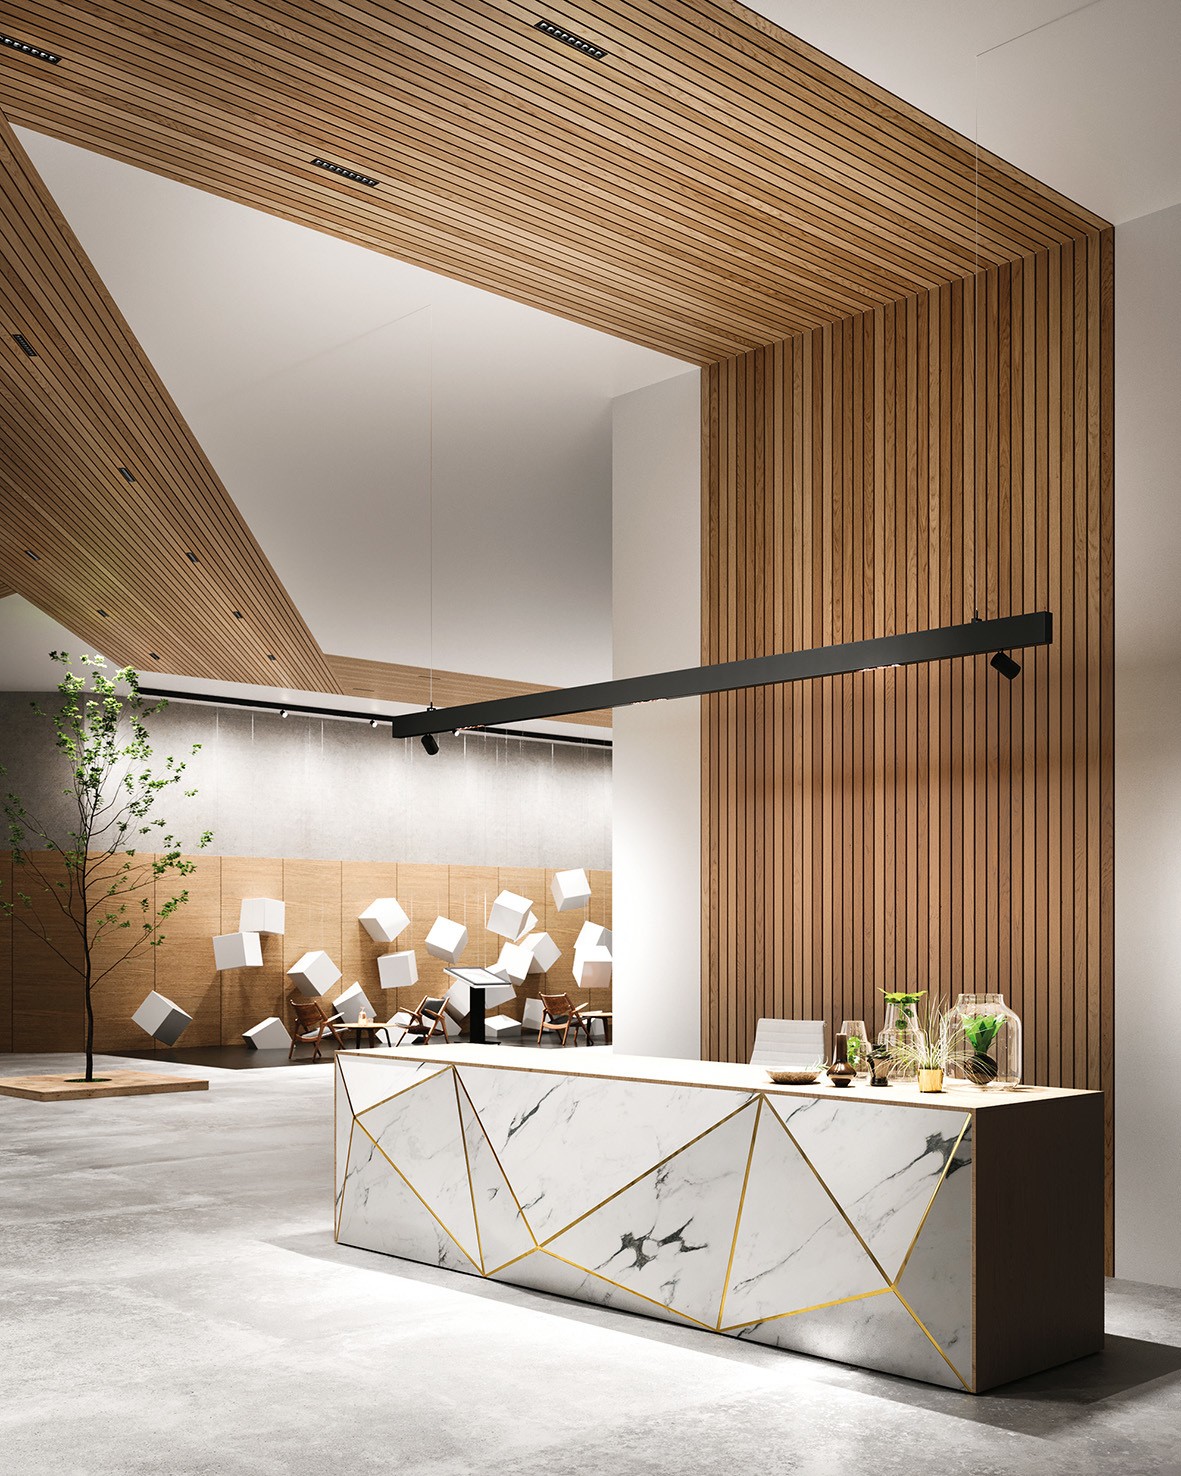 zumtobel chair architectural area lighting | Zumtobel: Integration of a lighting solution into ...